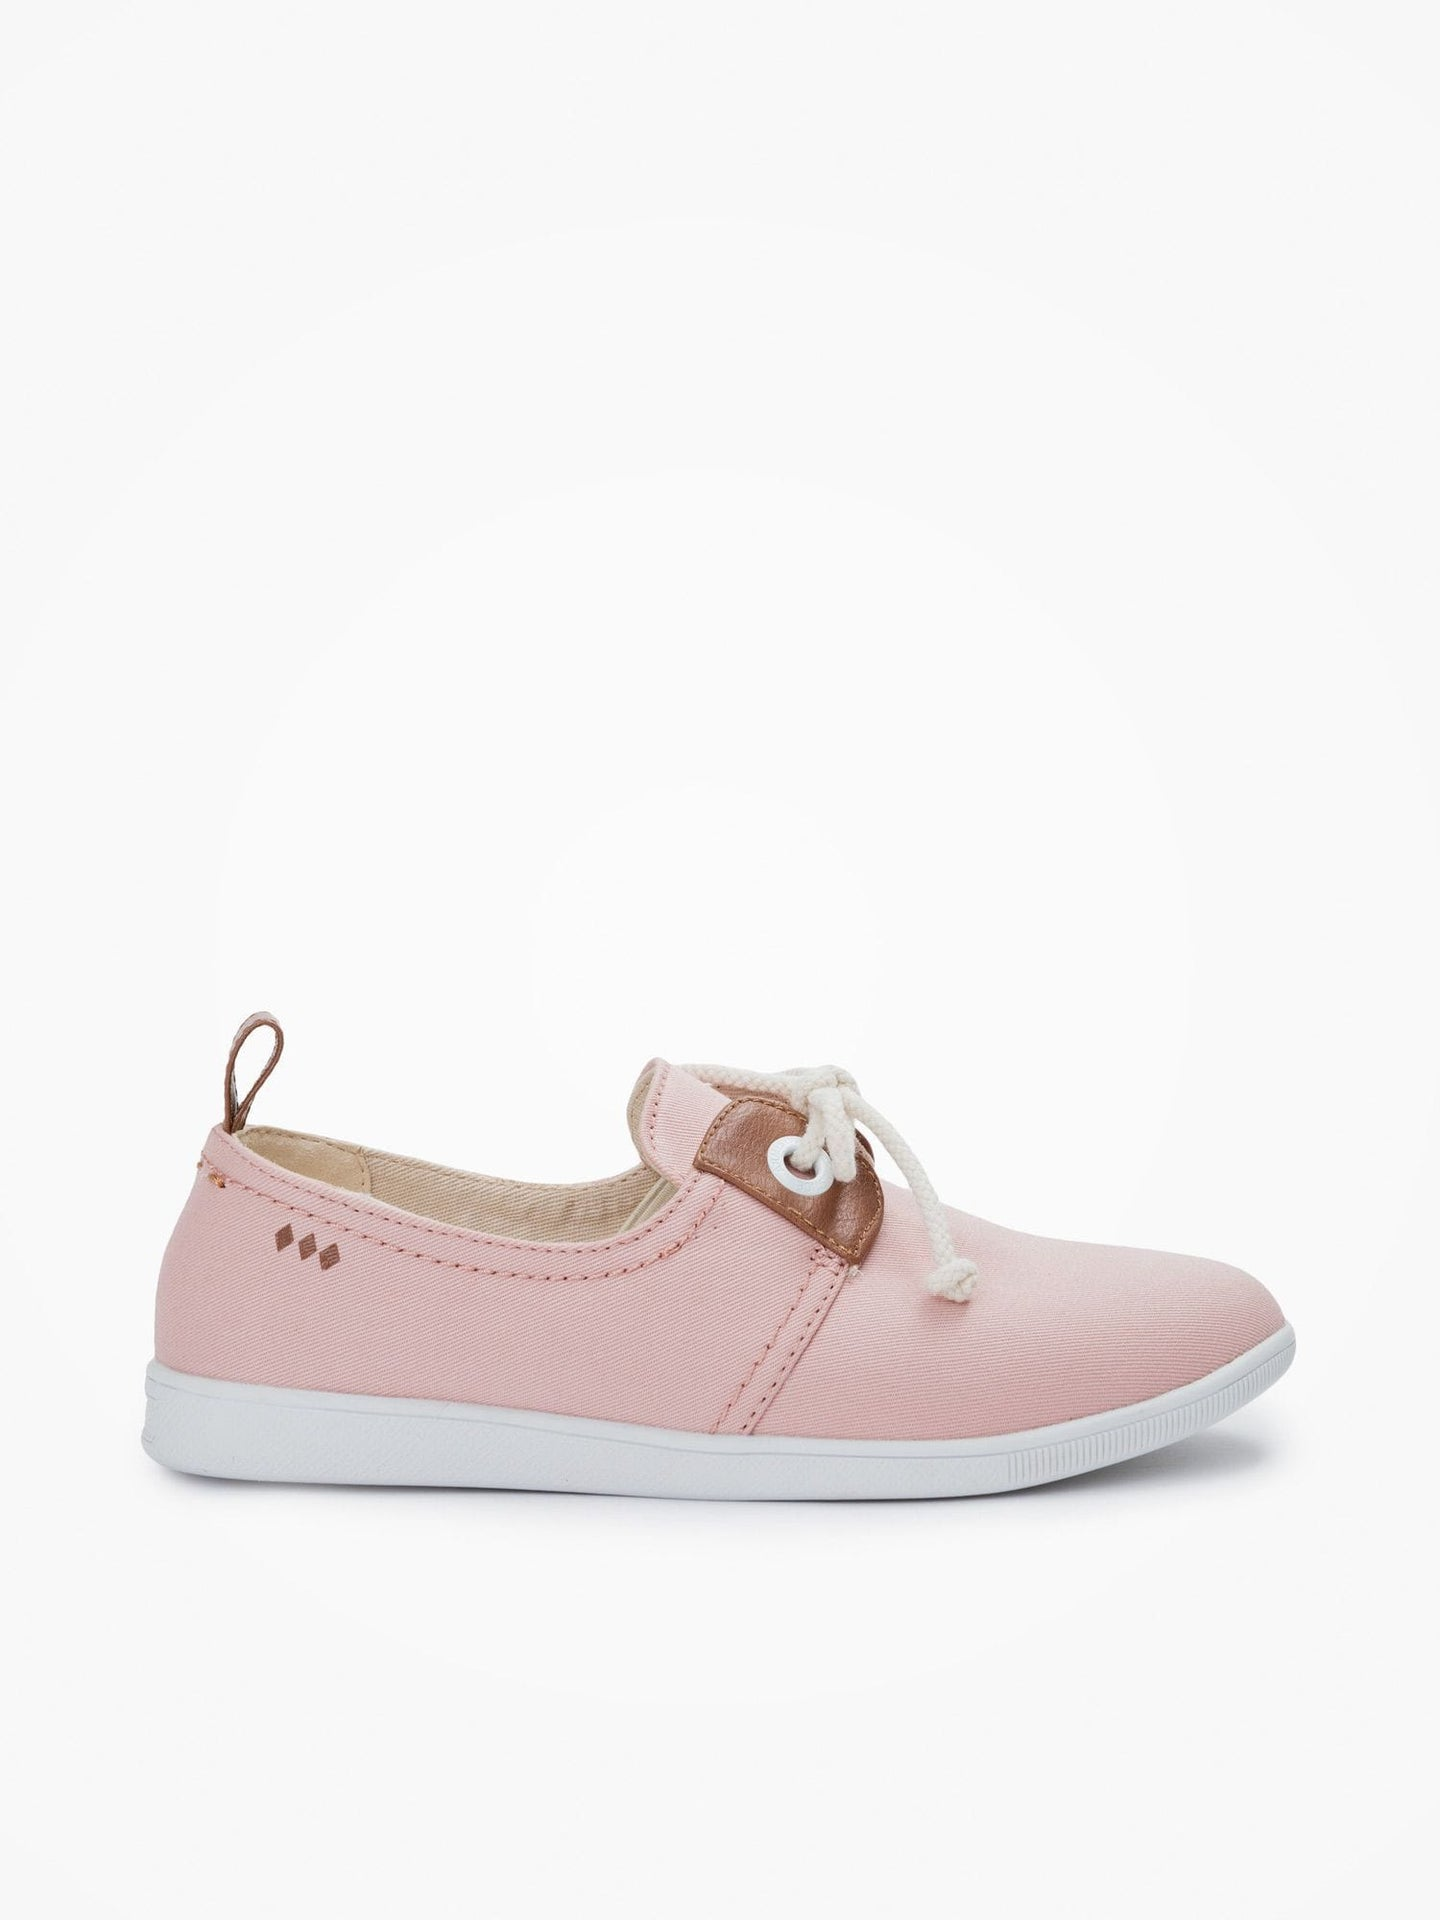 This minimalist 'petite' sneaker is packed with neo-retro style which complements its nautical inspiration with details such as oversized eyelets, leather yokes and marine-inspired cord laces. Available in different colours, here rose.